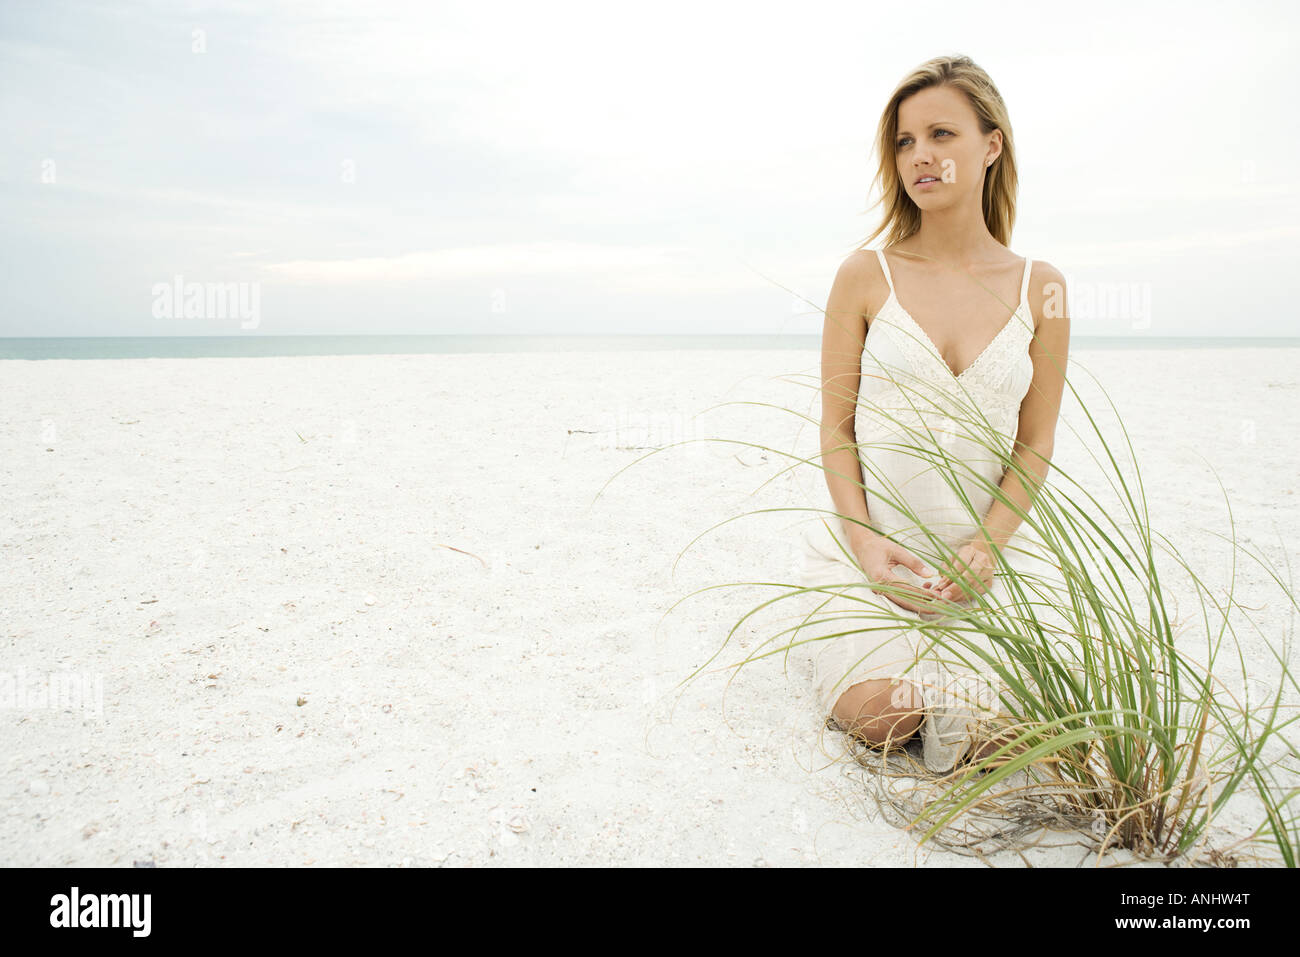 Woman kneeling on beach by dune grass, looking away, full length - Stock Image